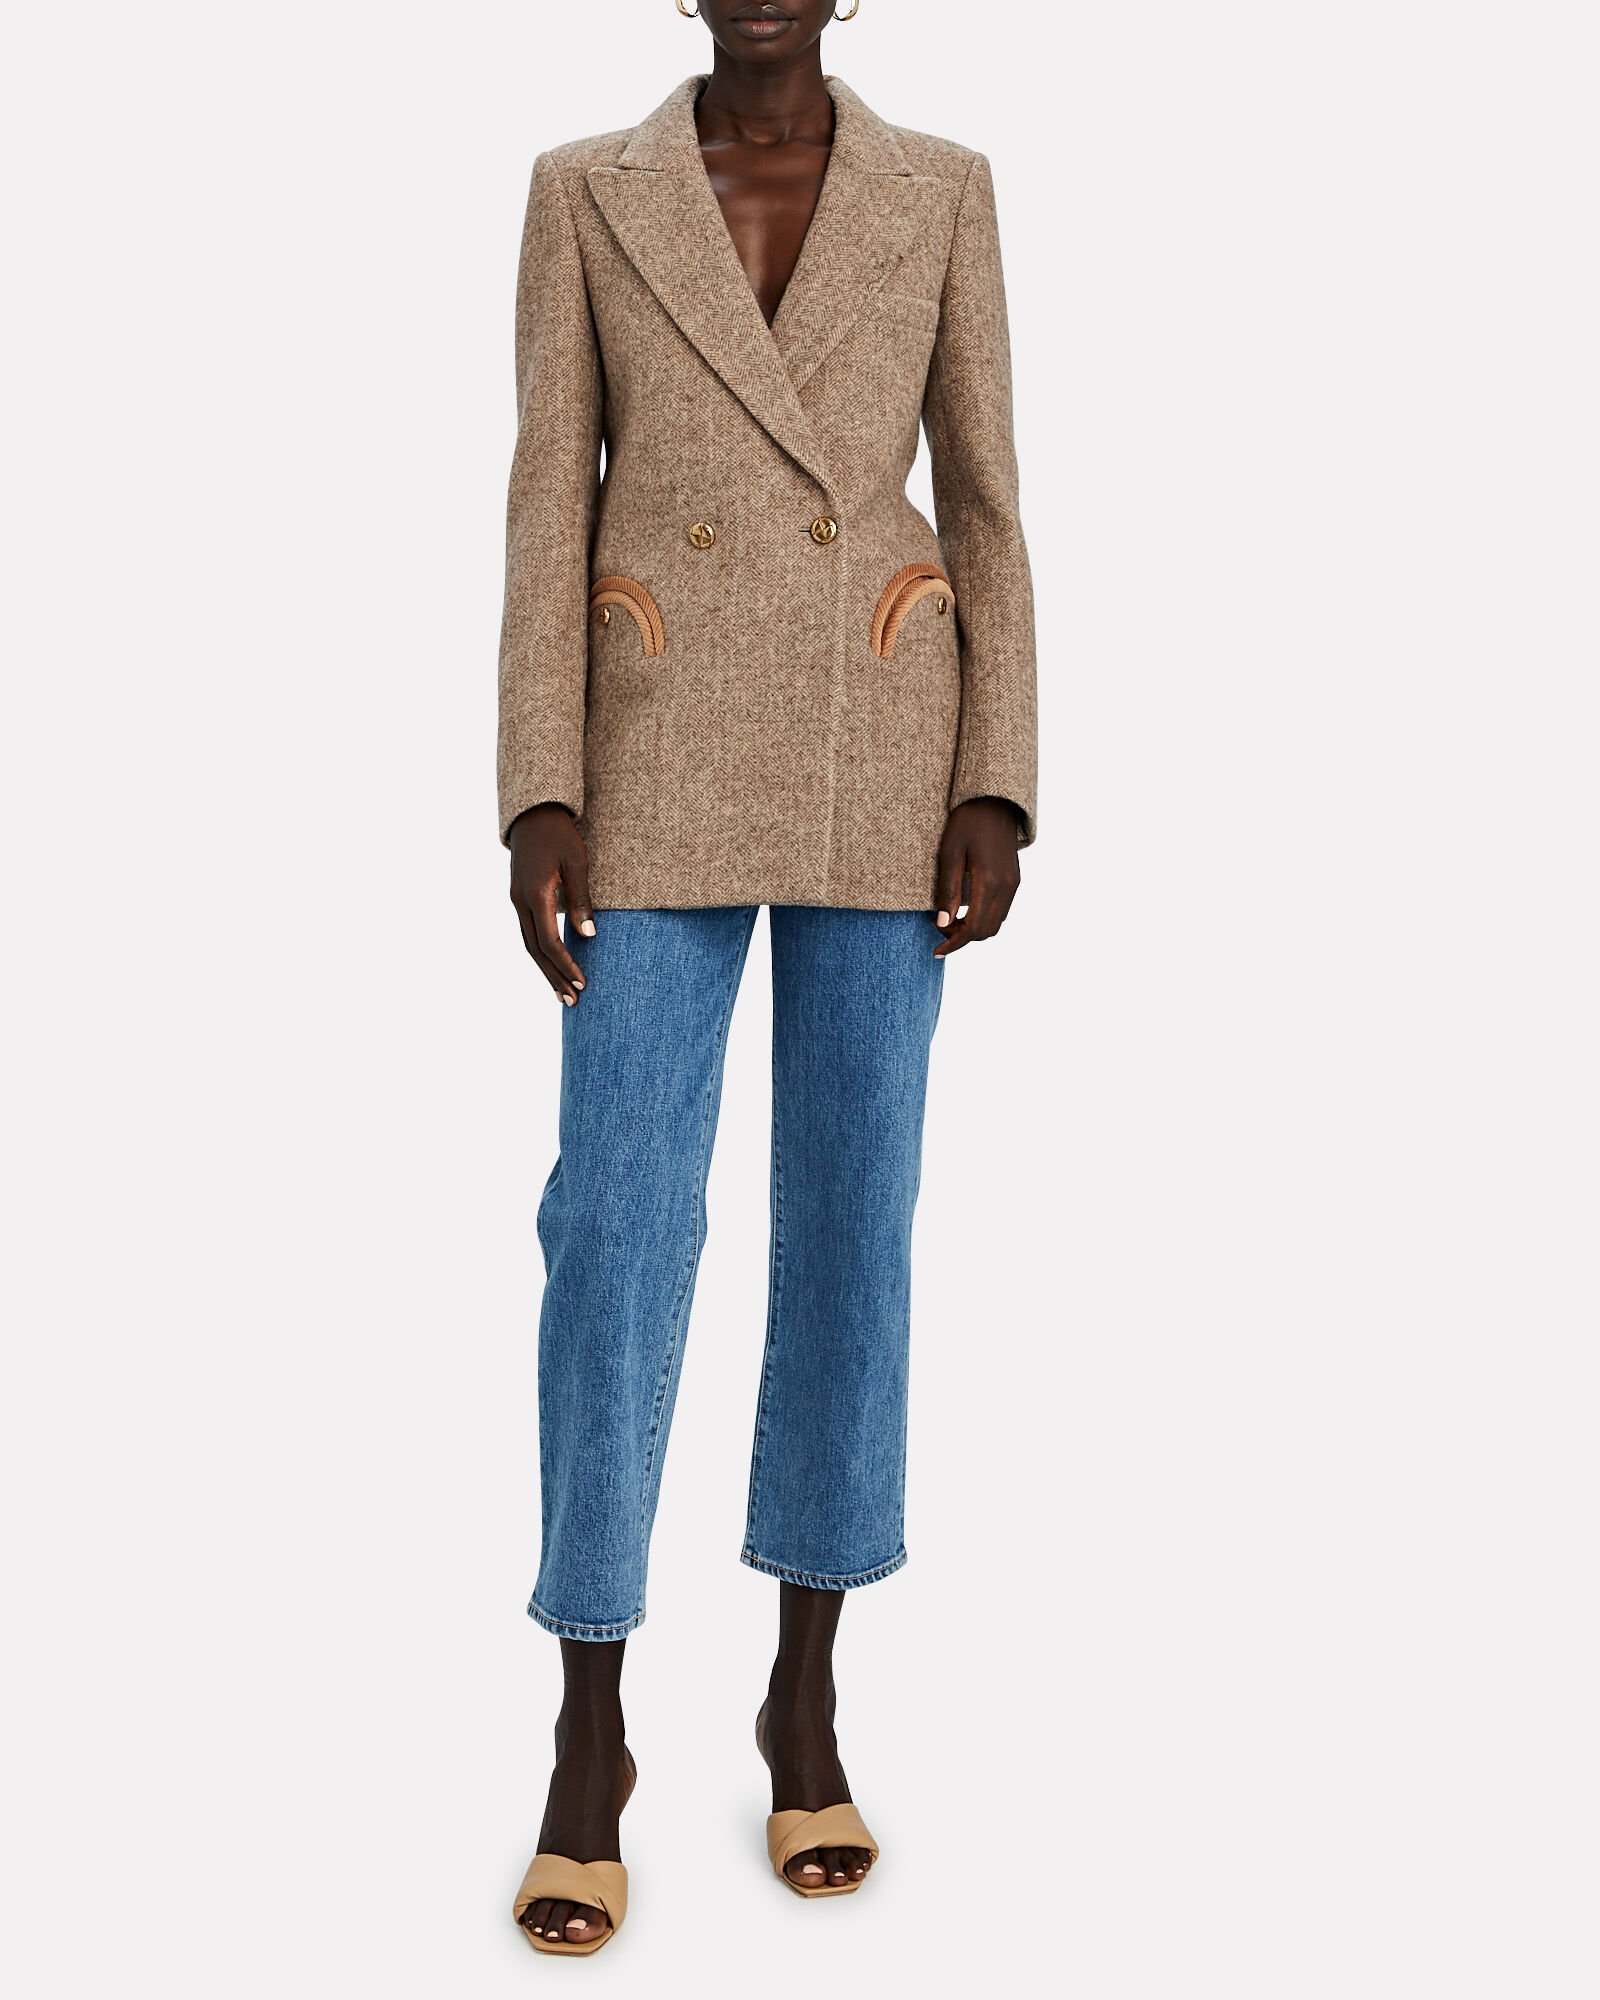 Solandge Everyday Herringbone Blazer, BEIGE, hi-res